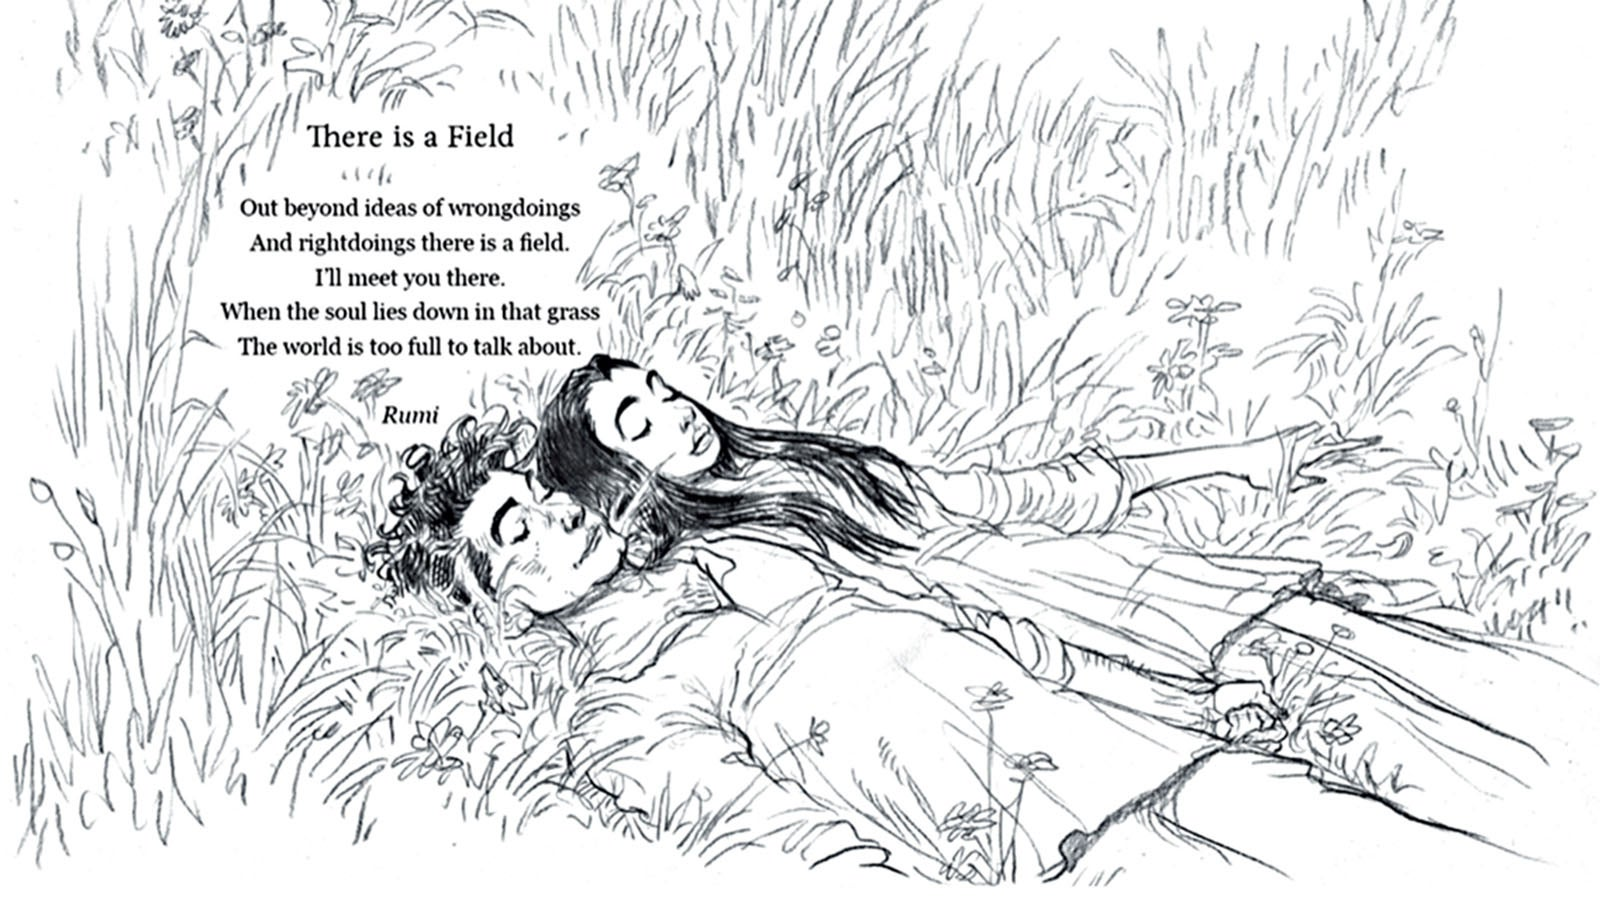 Illustration of There is a field from Poems to Live Your Life By